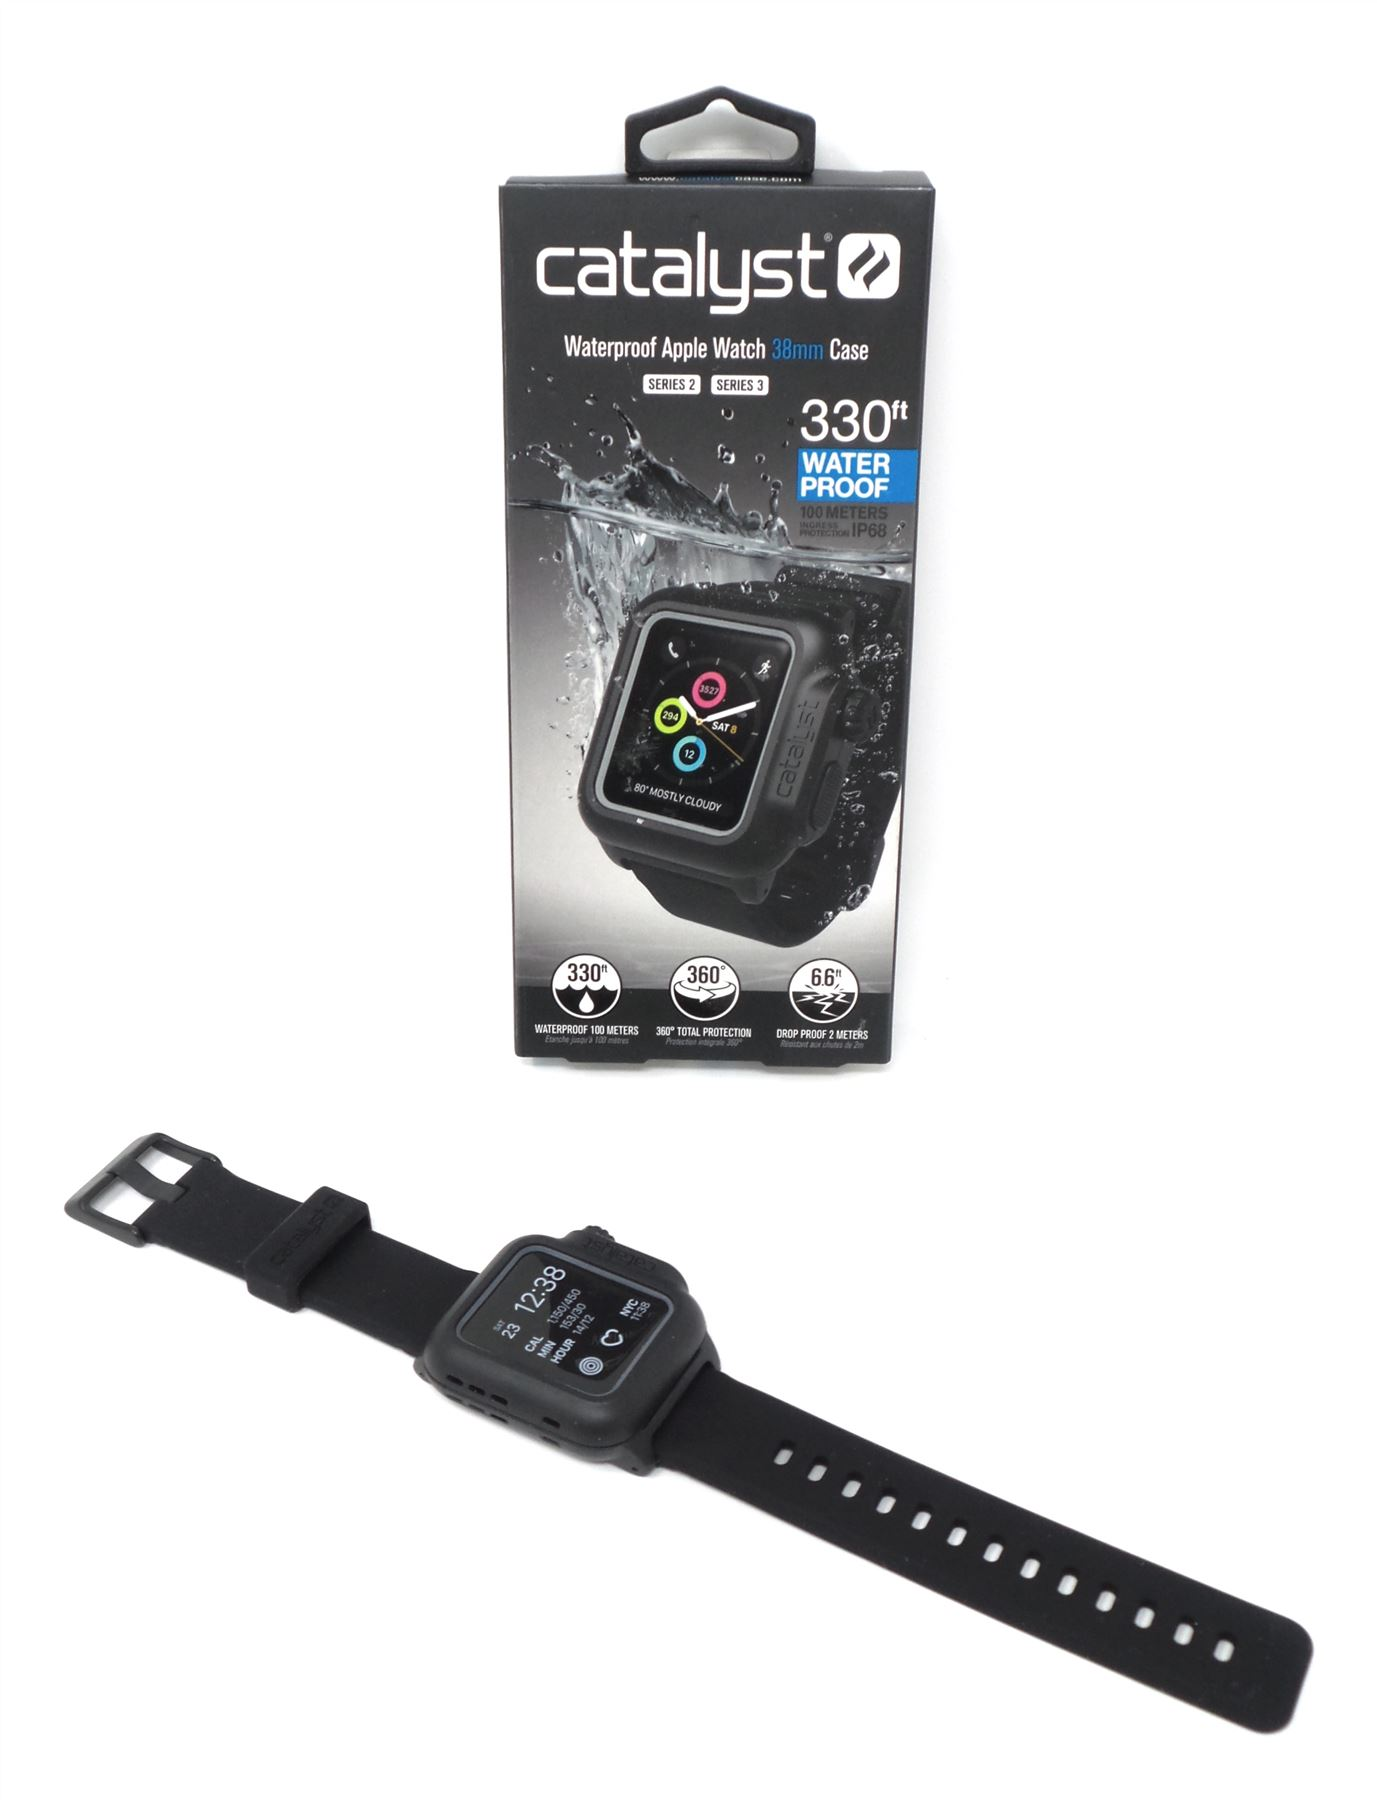 buy online 3dae3 525a7 Details about Catalyst Waterproof Case + Band for Apple Watch 38mm Series 2  & 3 Stealth Black